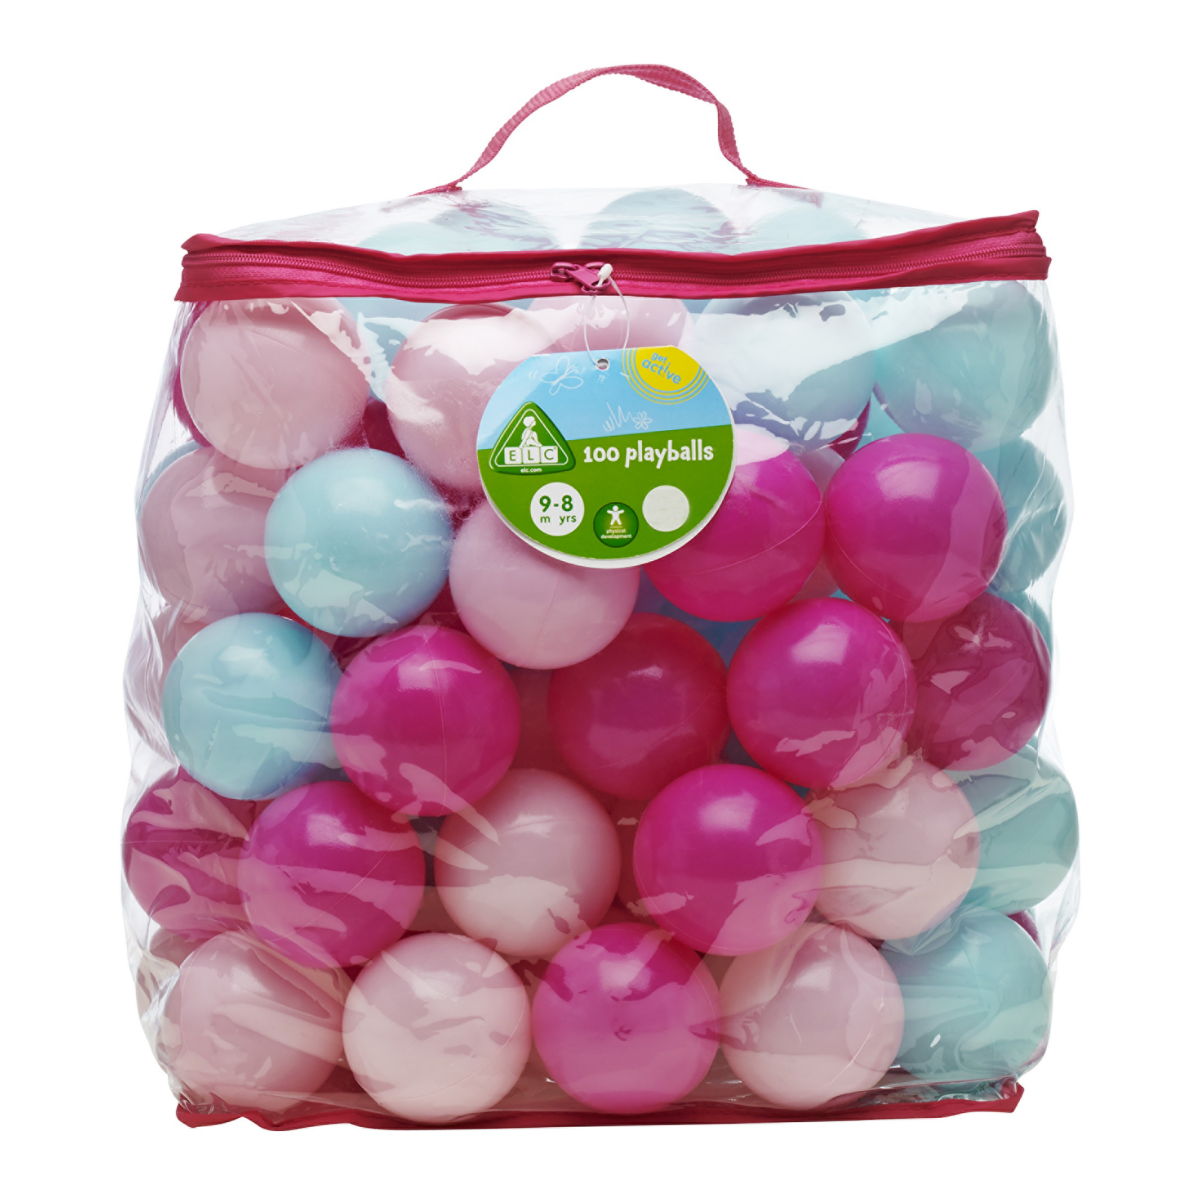 Early Learning Centre 100 Pink Playballs from Early Learning Center